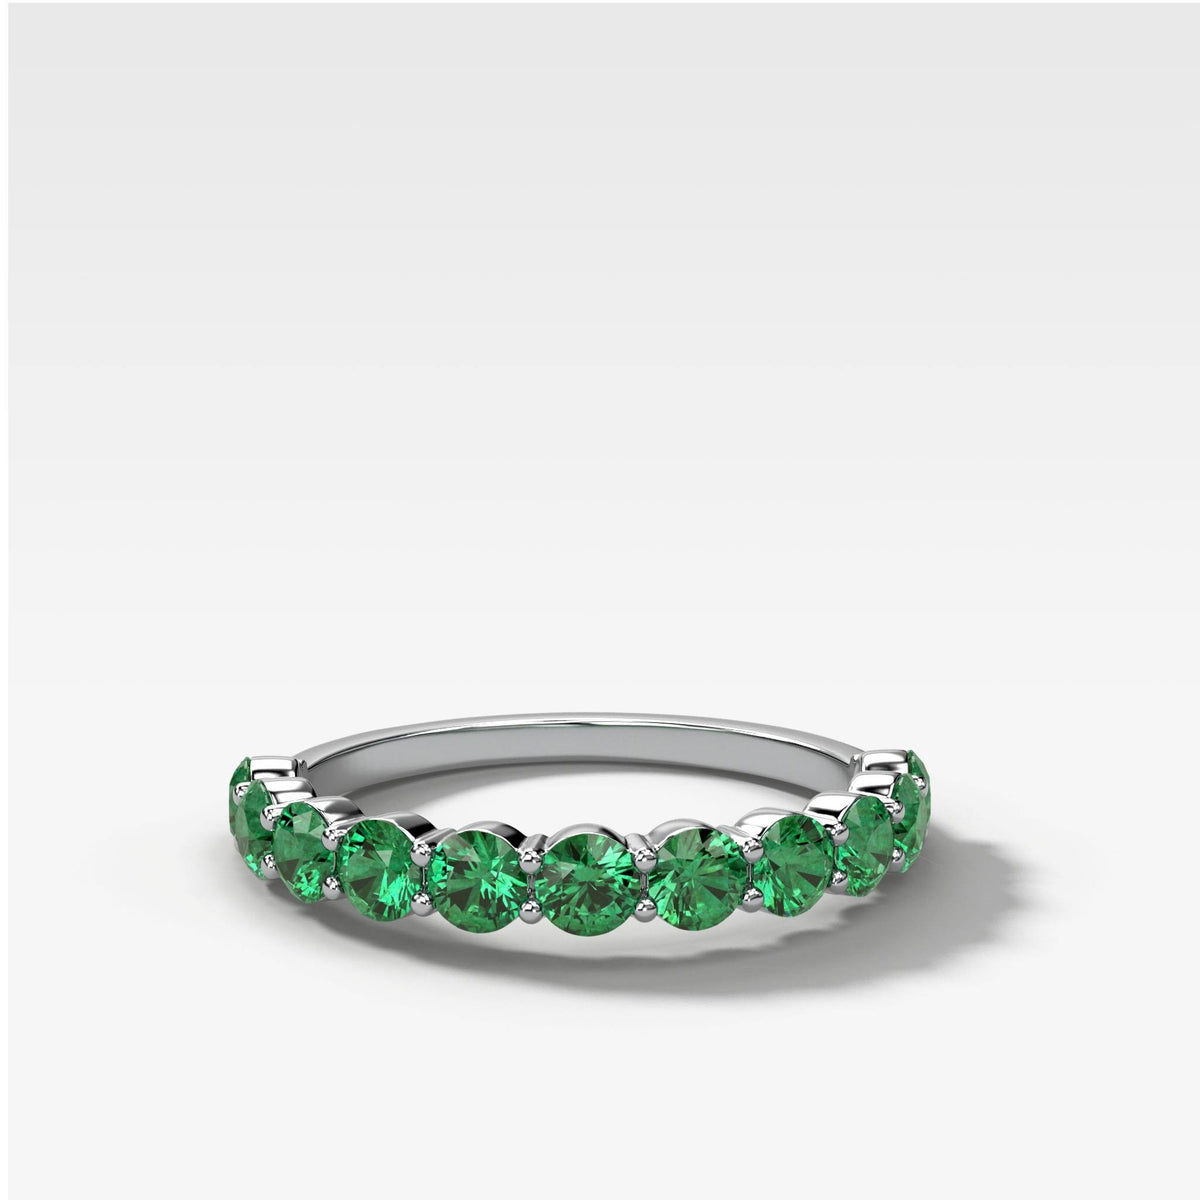 Shared Prong Stacker With Green Emeralds in White Gold by Good Stone